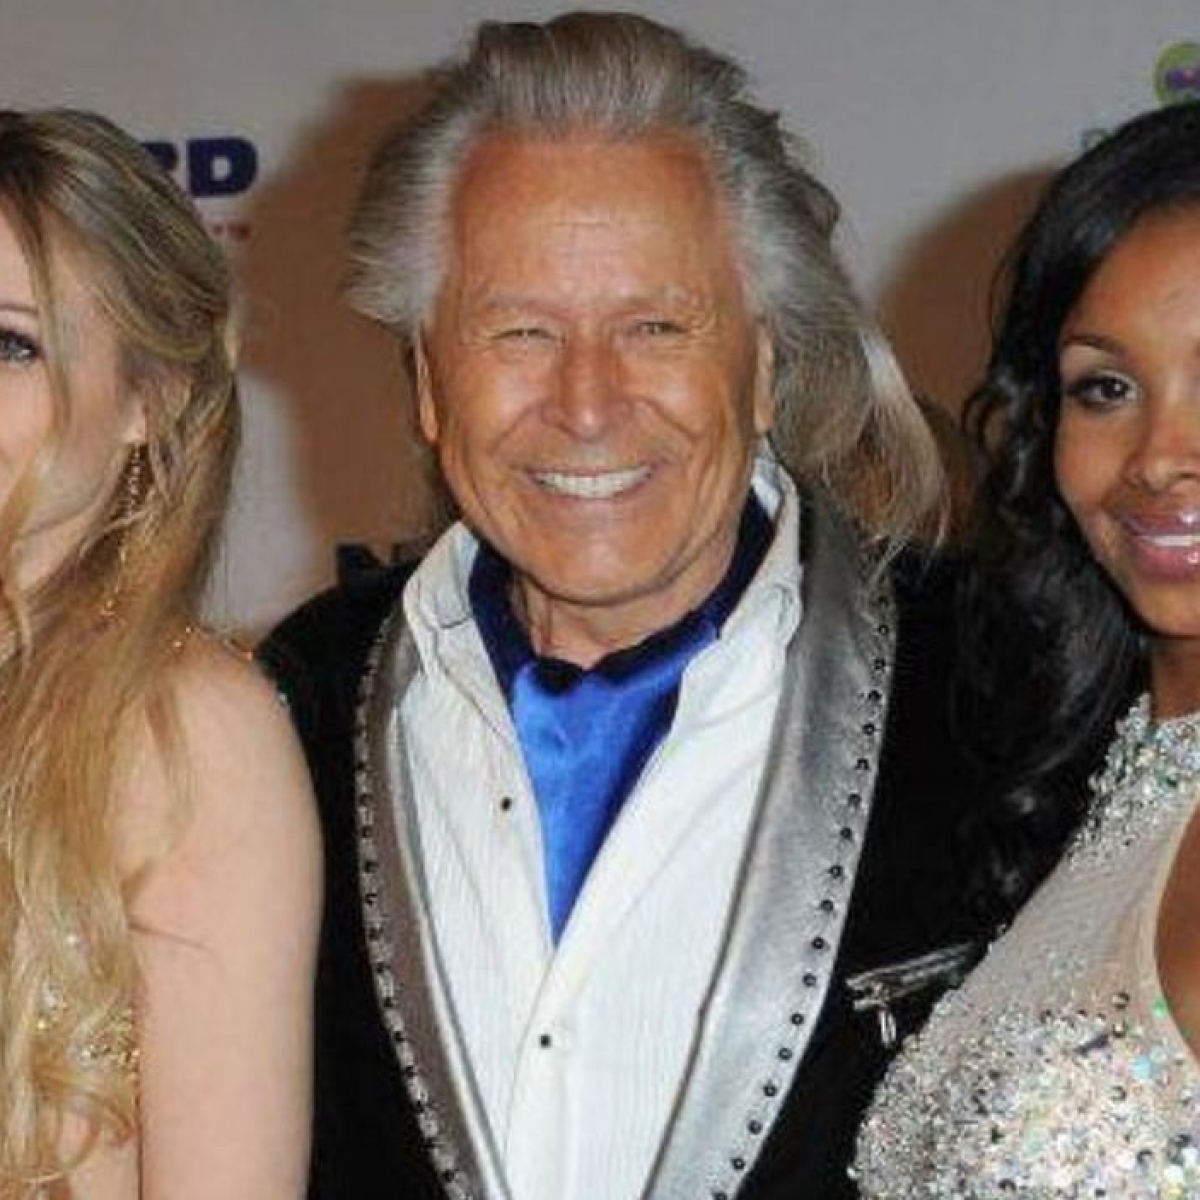 Fashion mogul Peter Nygard, 79, arrested over trafficking and sexual assault allegations